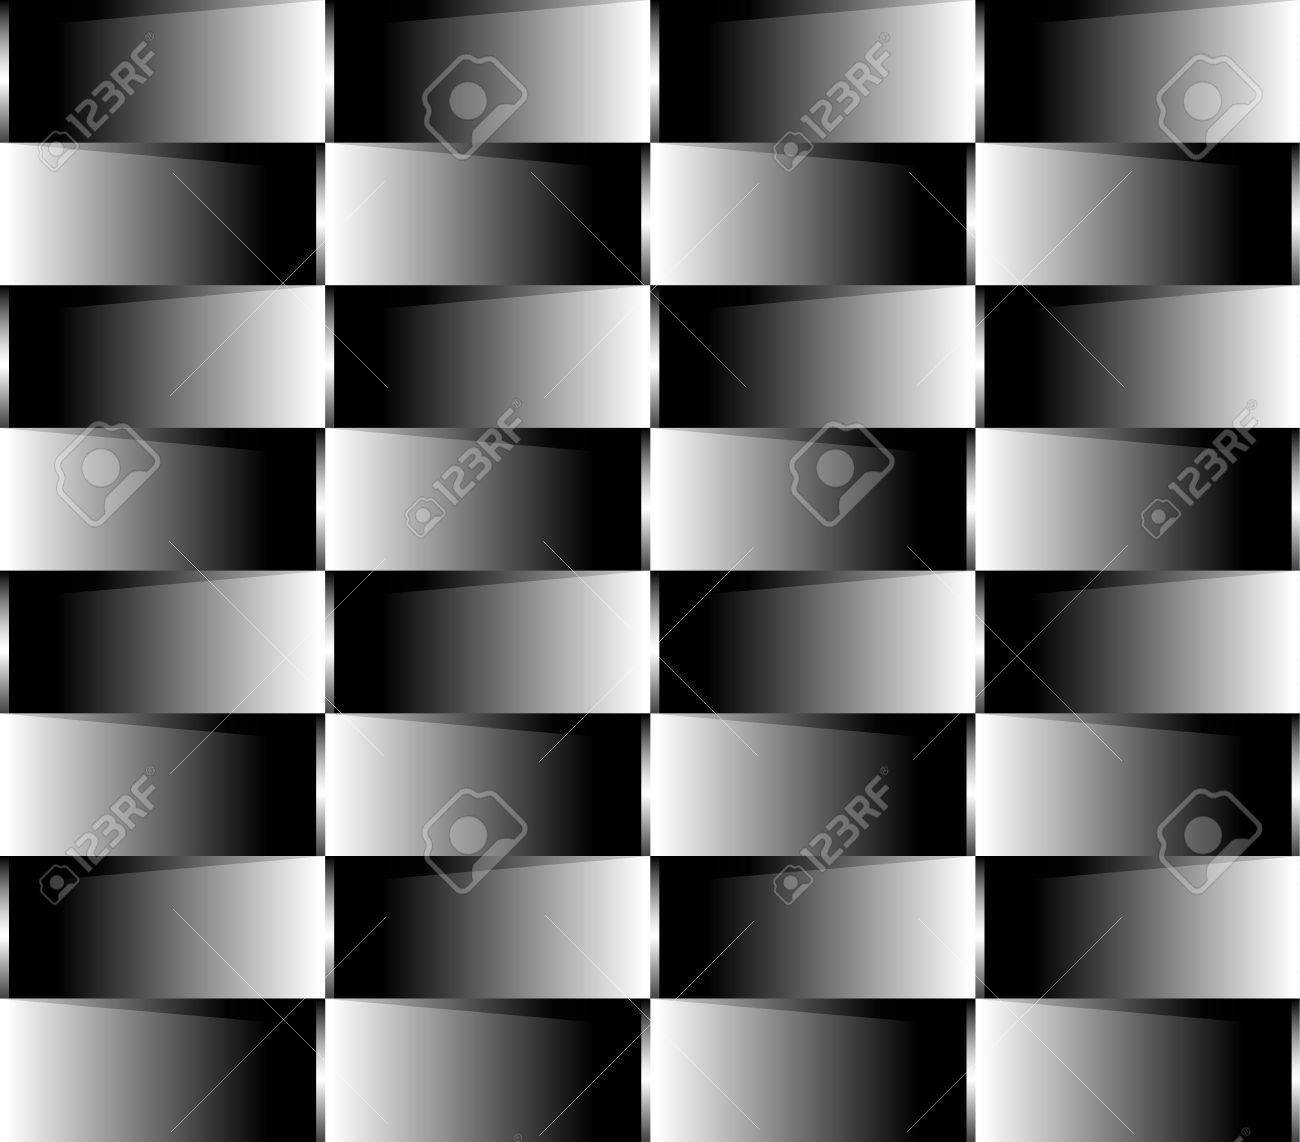 Parallel Squares Optical Illusion Stock Vector - 18546146